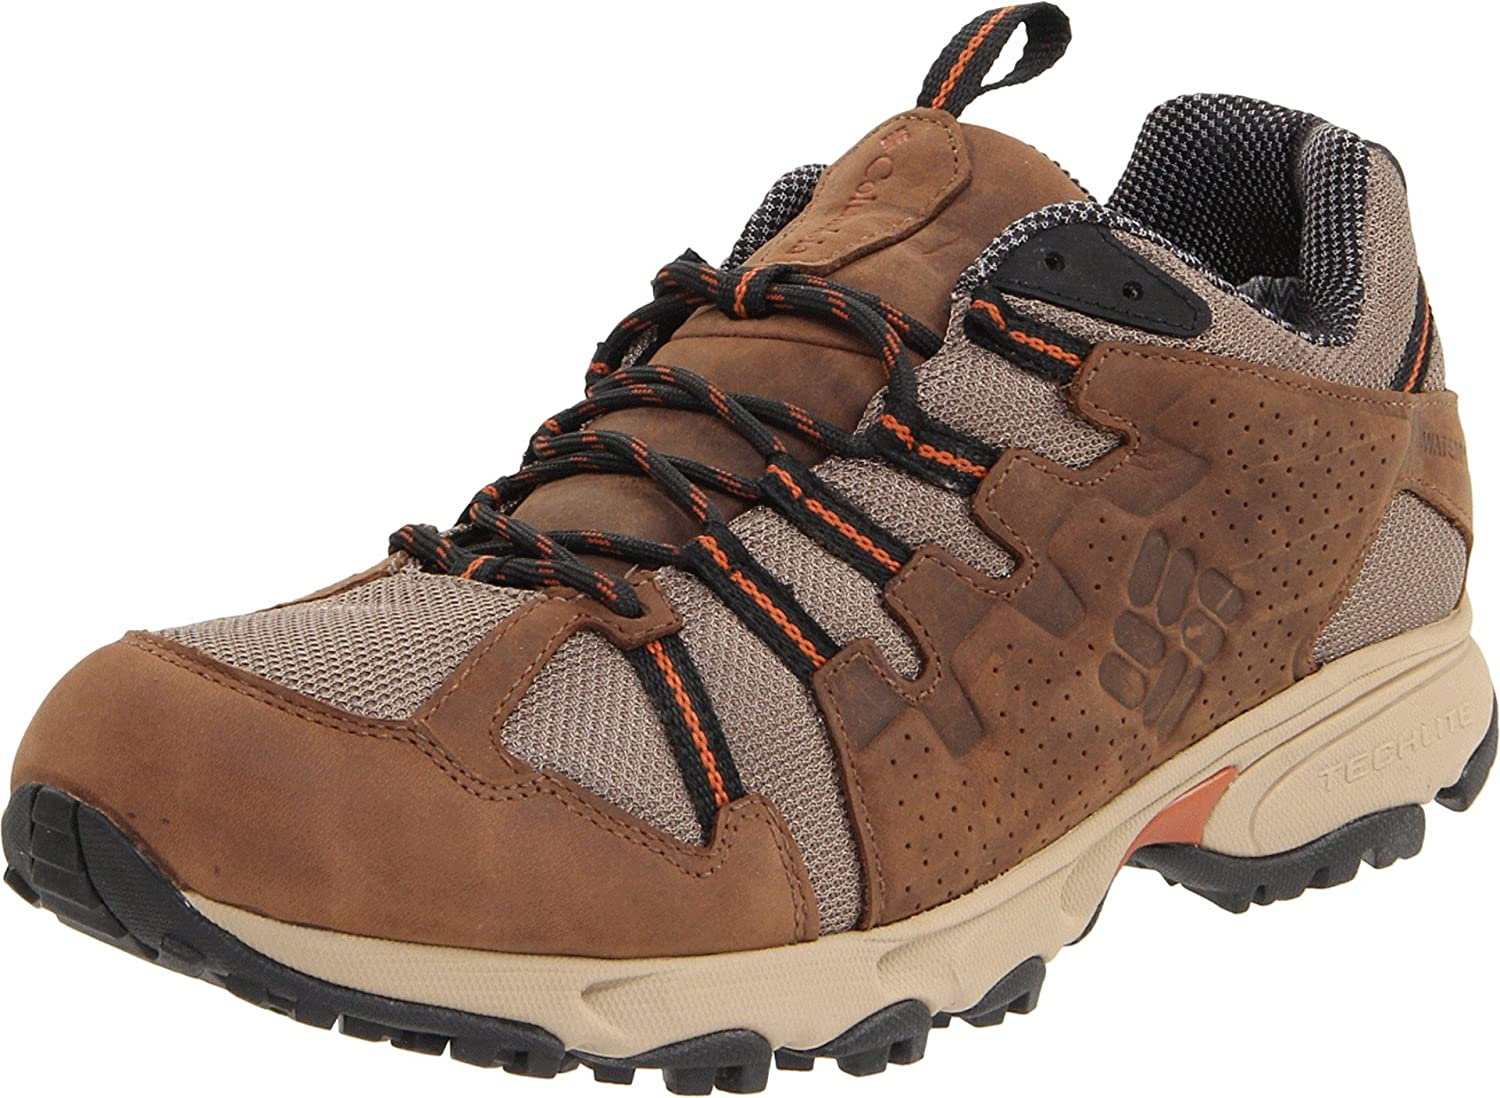 Columbia Men's Talus Ridge Low Waterproof LTR Trail Shoe